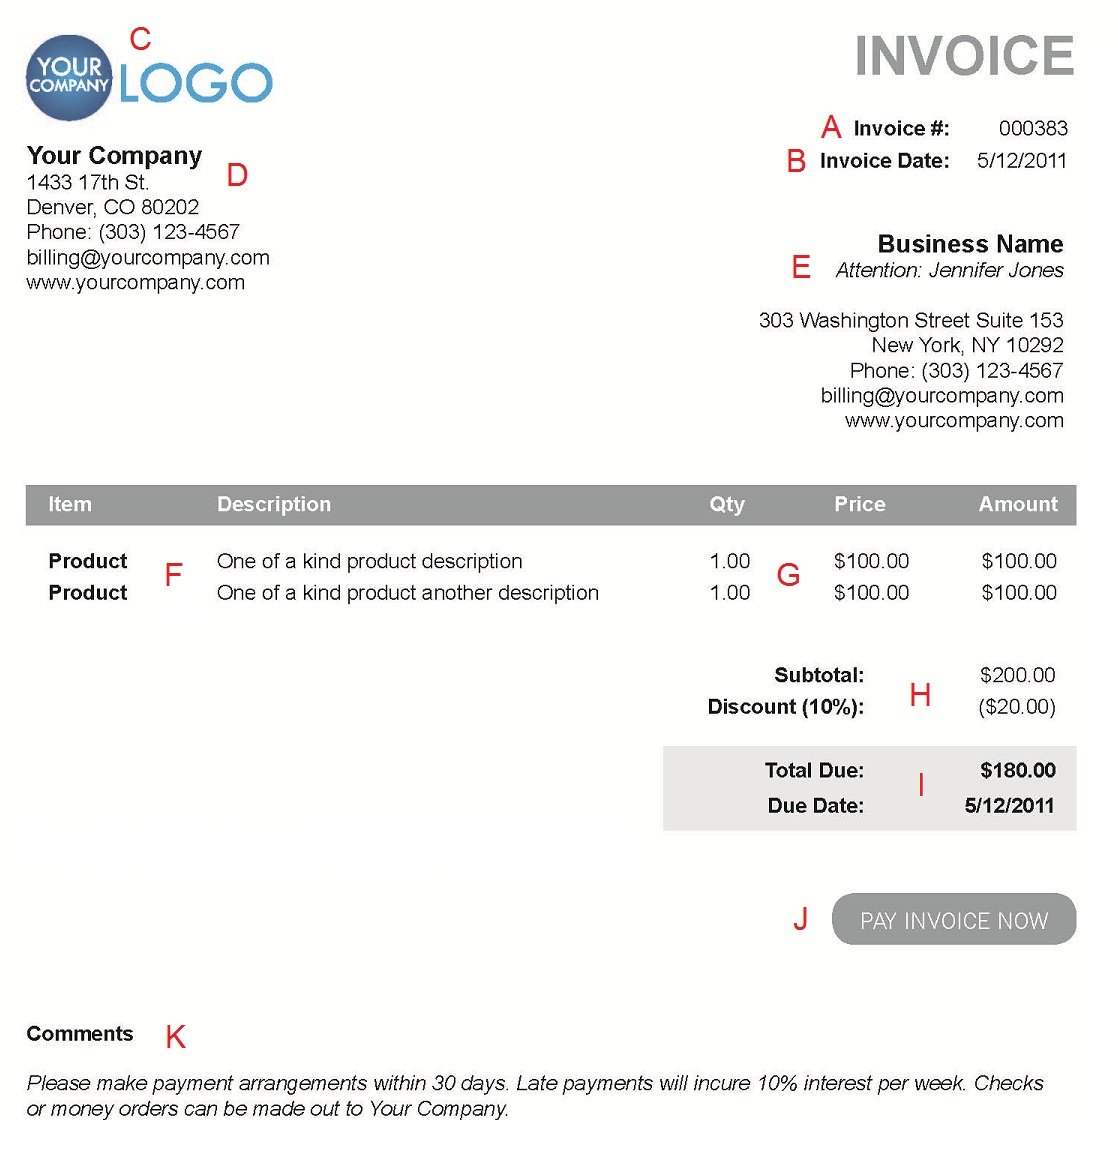 Shopdesignsus  Marvelous The  Different Sections Of An Electronic Payment Invoice With Heavenly A  With Amusing Invoice Form Free Printable Also Ms Access Invoice Template In Addition Sample Word Invoice And Invoice Process Flow Chart As Well As How Much Over Invoice Should You Pay For A Car Additionally Mazda Invoice From Paysimplecom With Shopdesignsus  Heavenly The  Different Sections Of An Electronic Payment Invoice With Amusing A  And Marvelous Invoice Form Free Printable Also Ms Access Invoice Template In Addition Sample Word Invoice From Paysimplecom